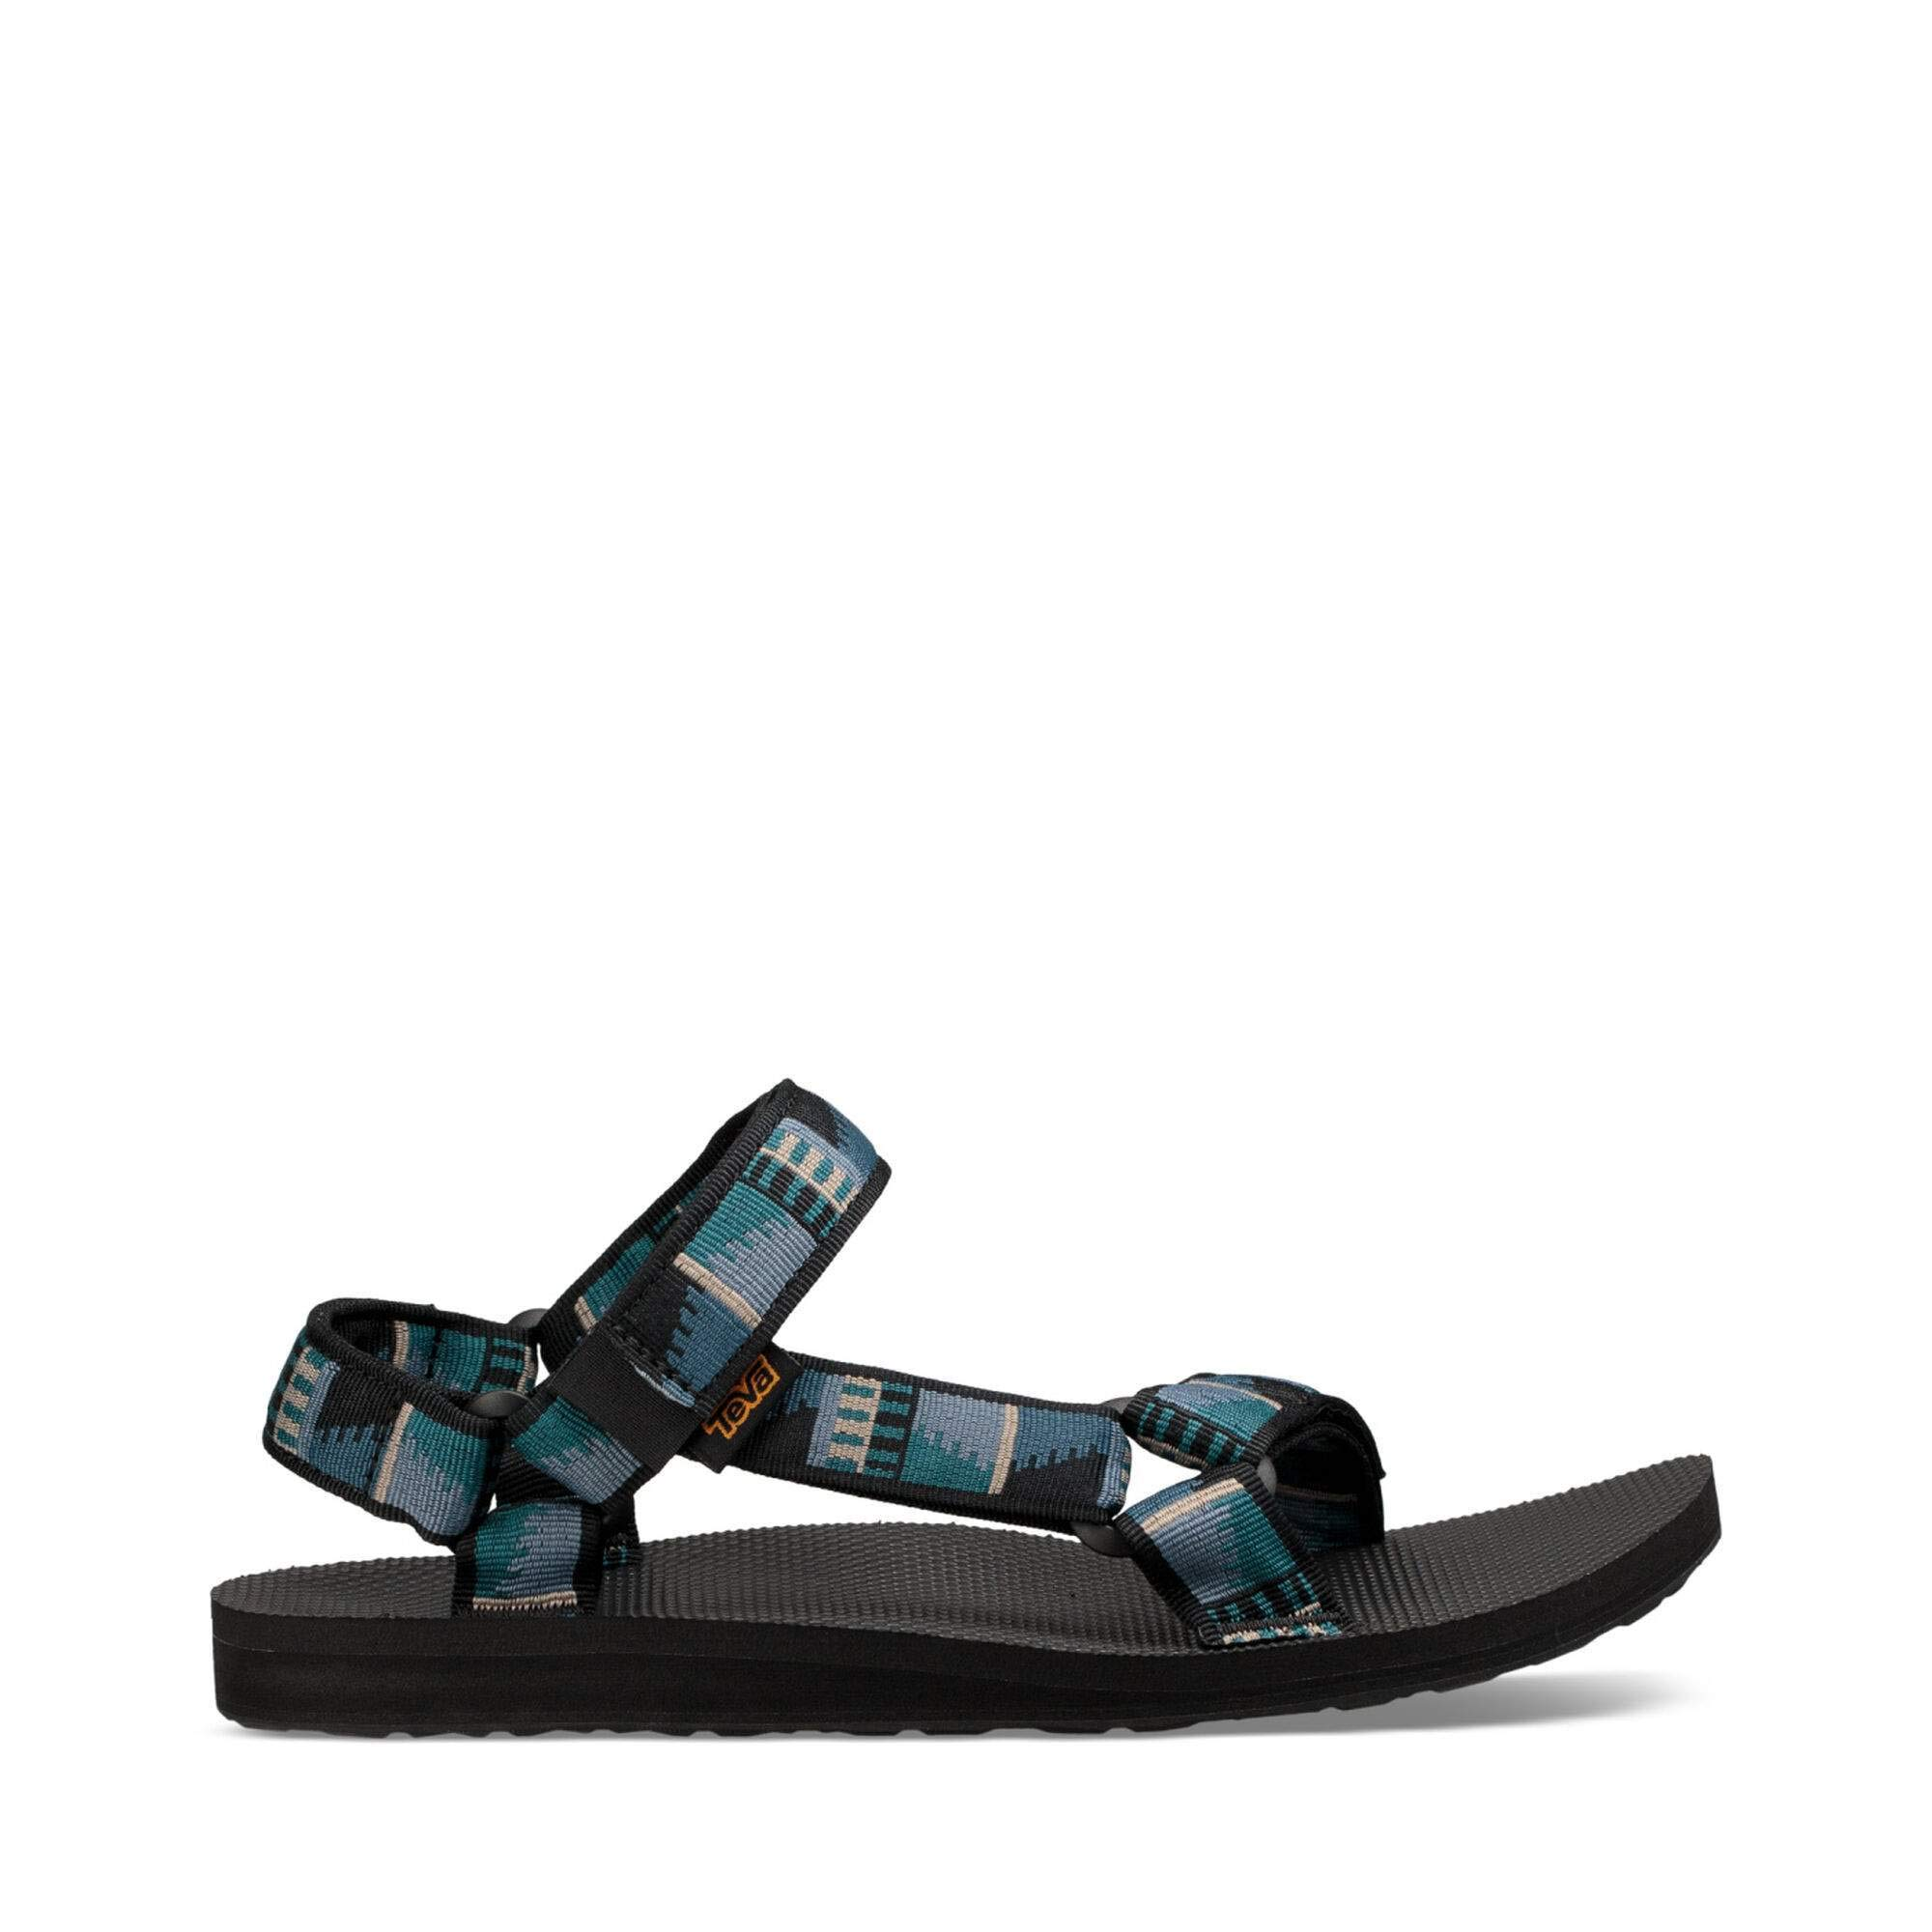 Teva - Original Universal - Peaks Black - 11 by Teva